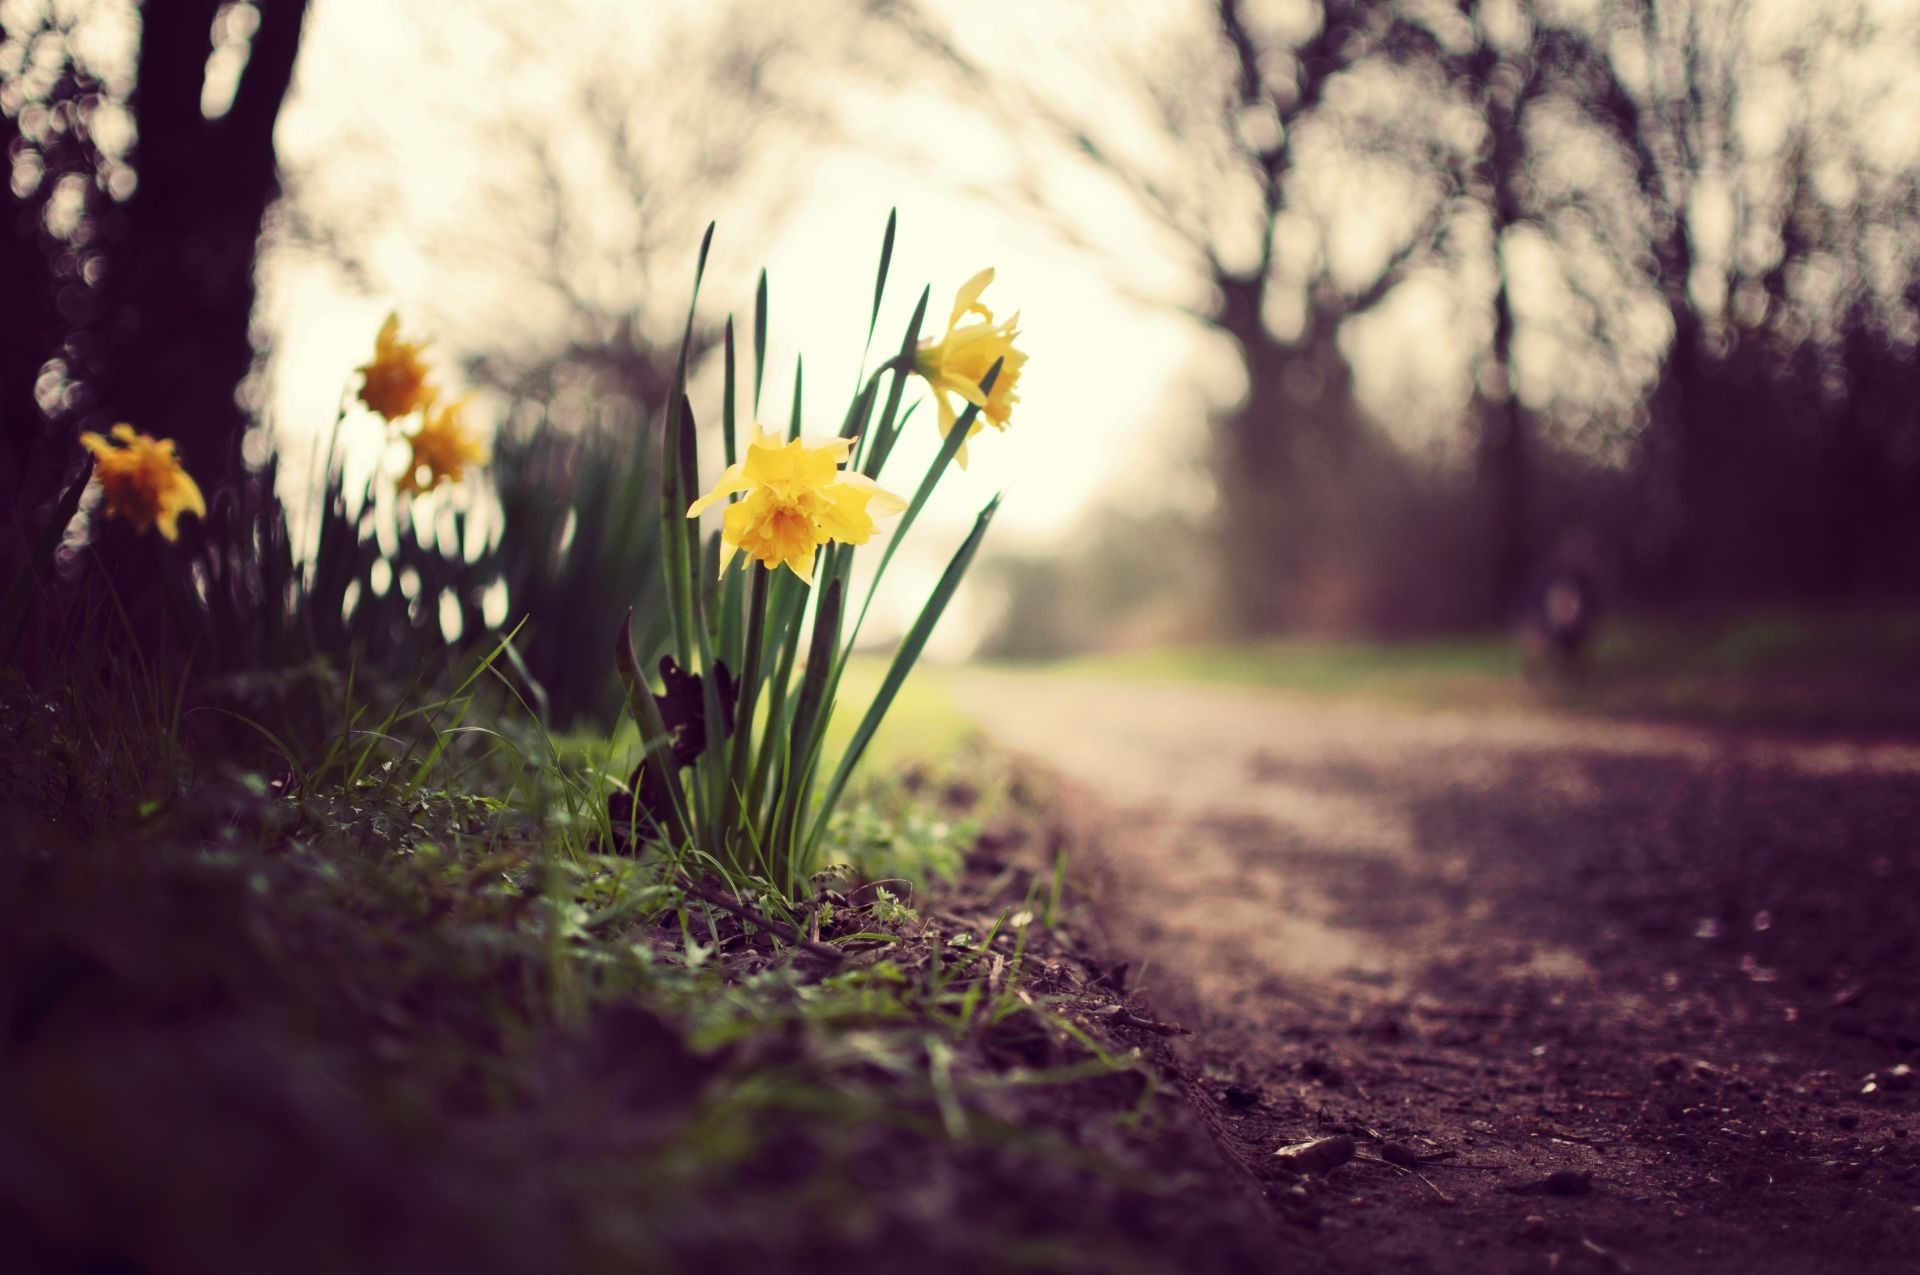 plants flowers Daffodils leaves the grass greens the earth